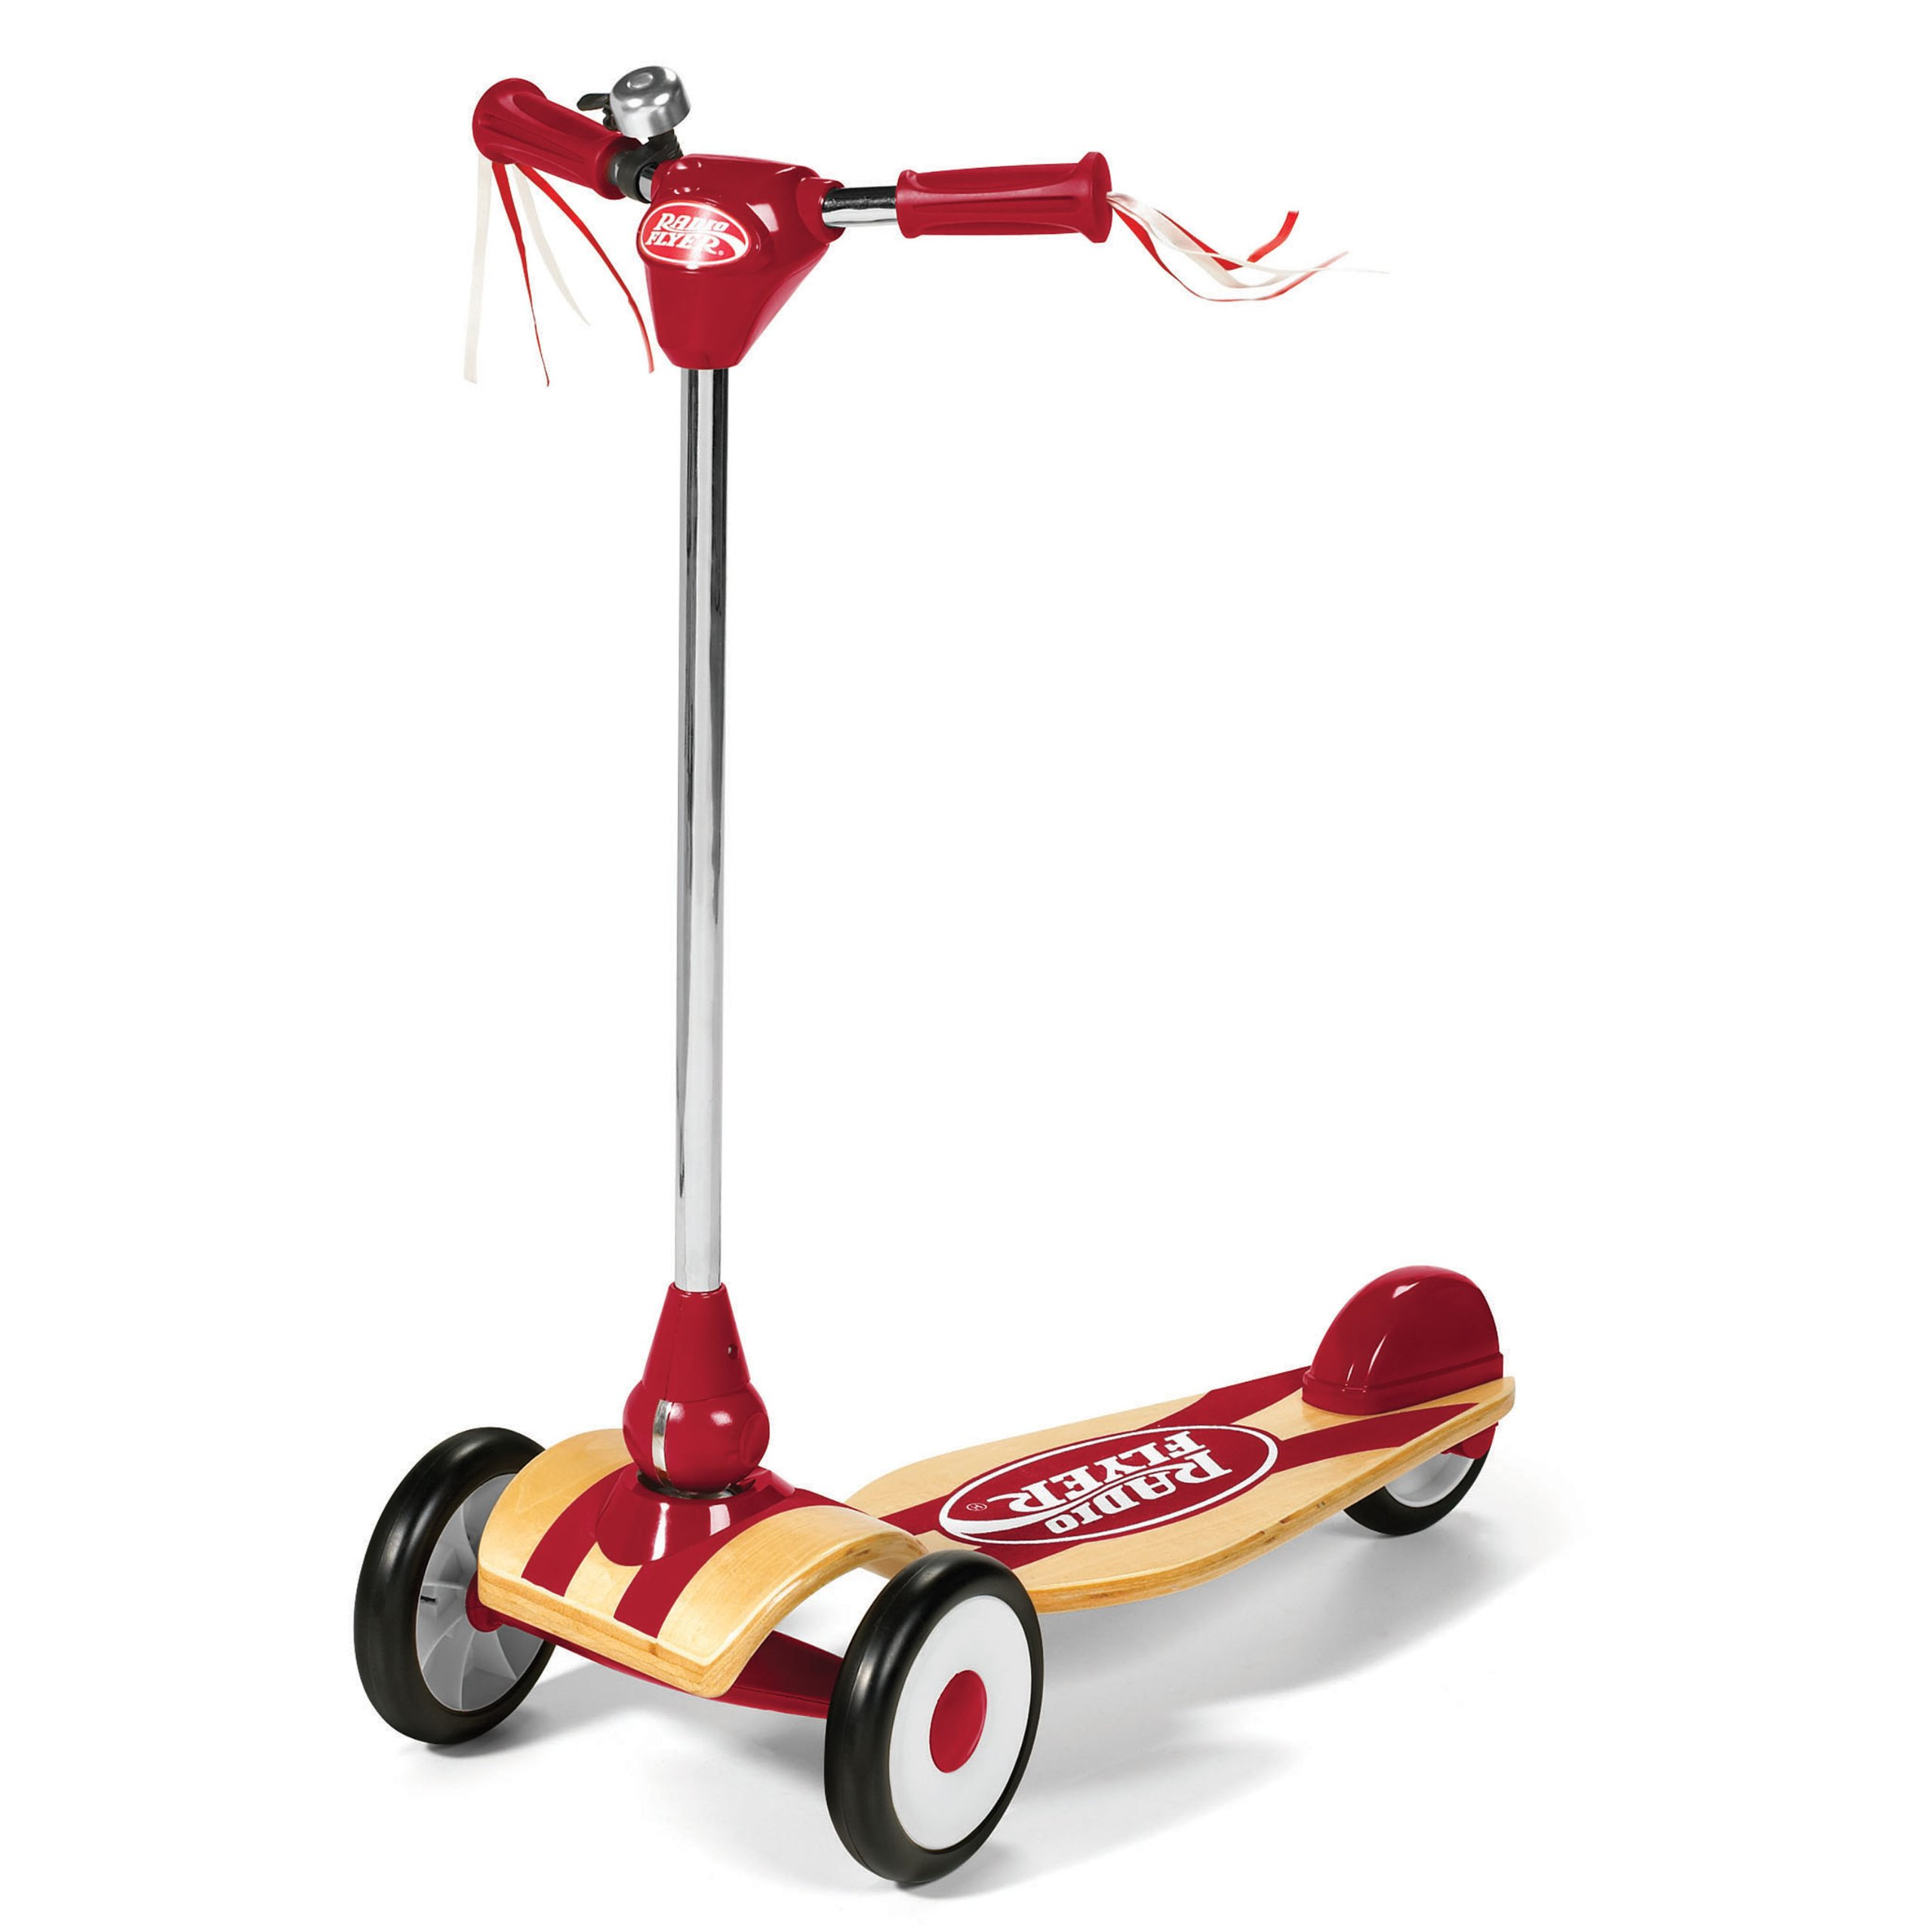 Radio Flyer Deluxe My 1st ScooterTM by Radio Flyer